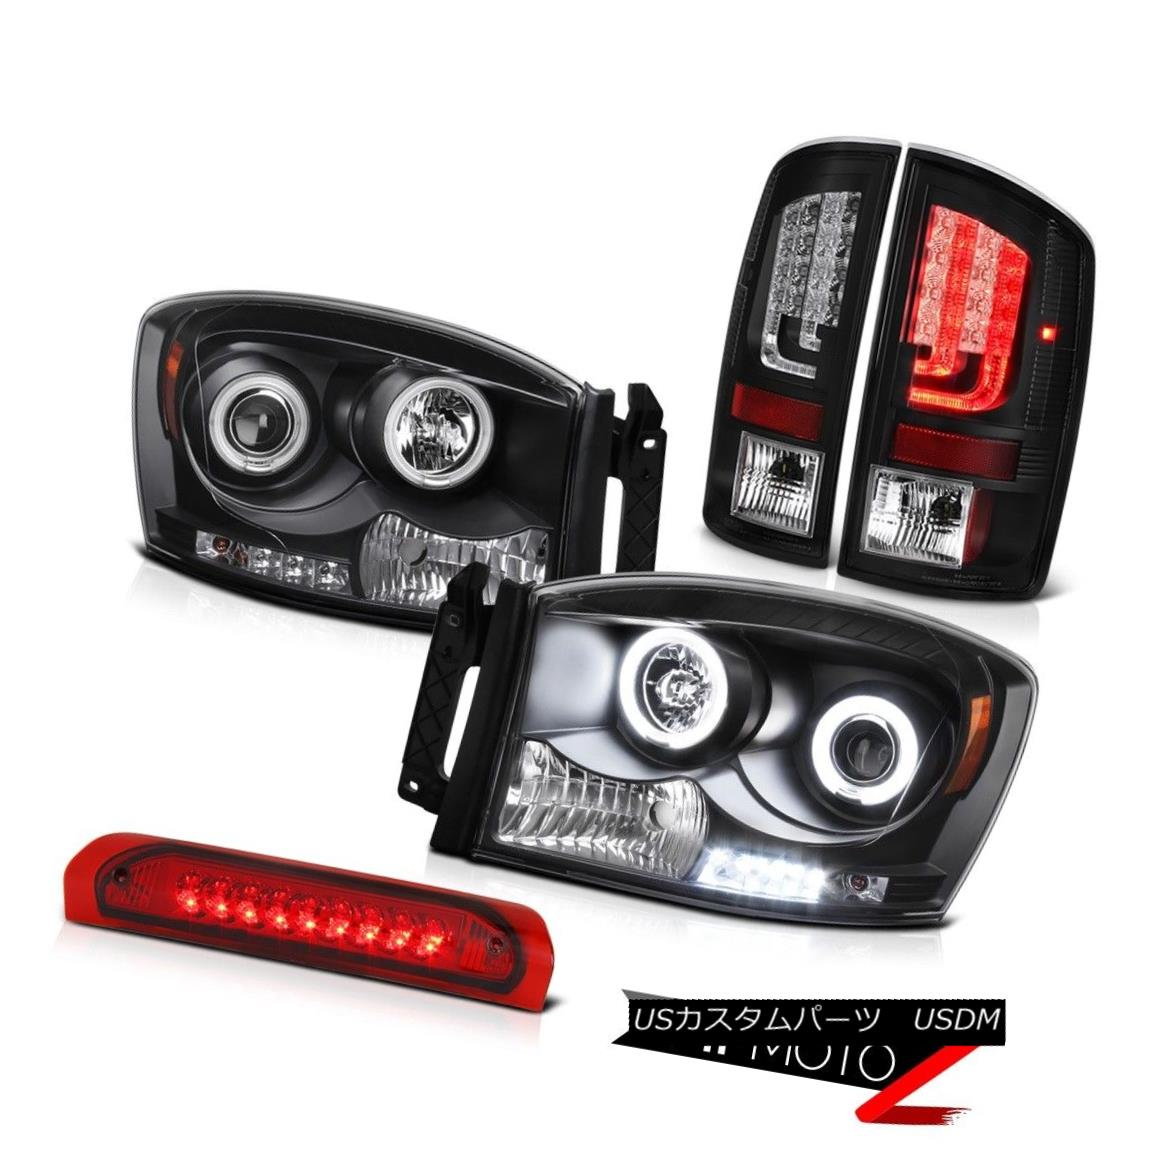 テールライト 2007-2009 Dodge Ram 3500 SLT Raven Black Tail Lamps Headlights High STop Lamp 2007-2009 Dodge Ram 3500 SLT RavenブラックテールランプヘッドライトハイSTOPランプ